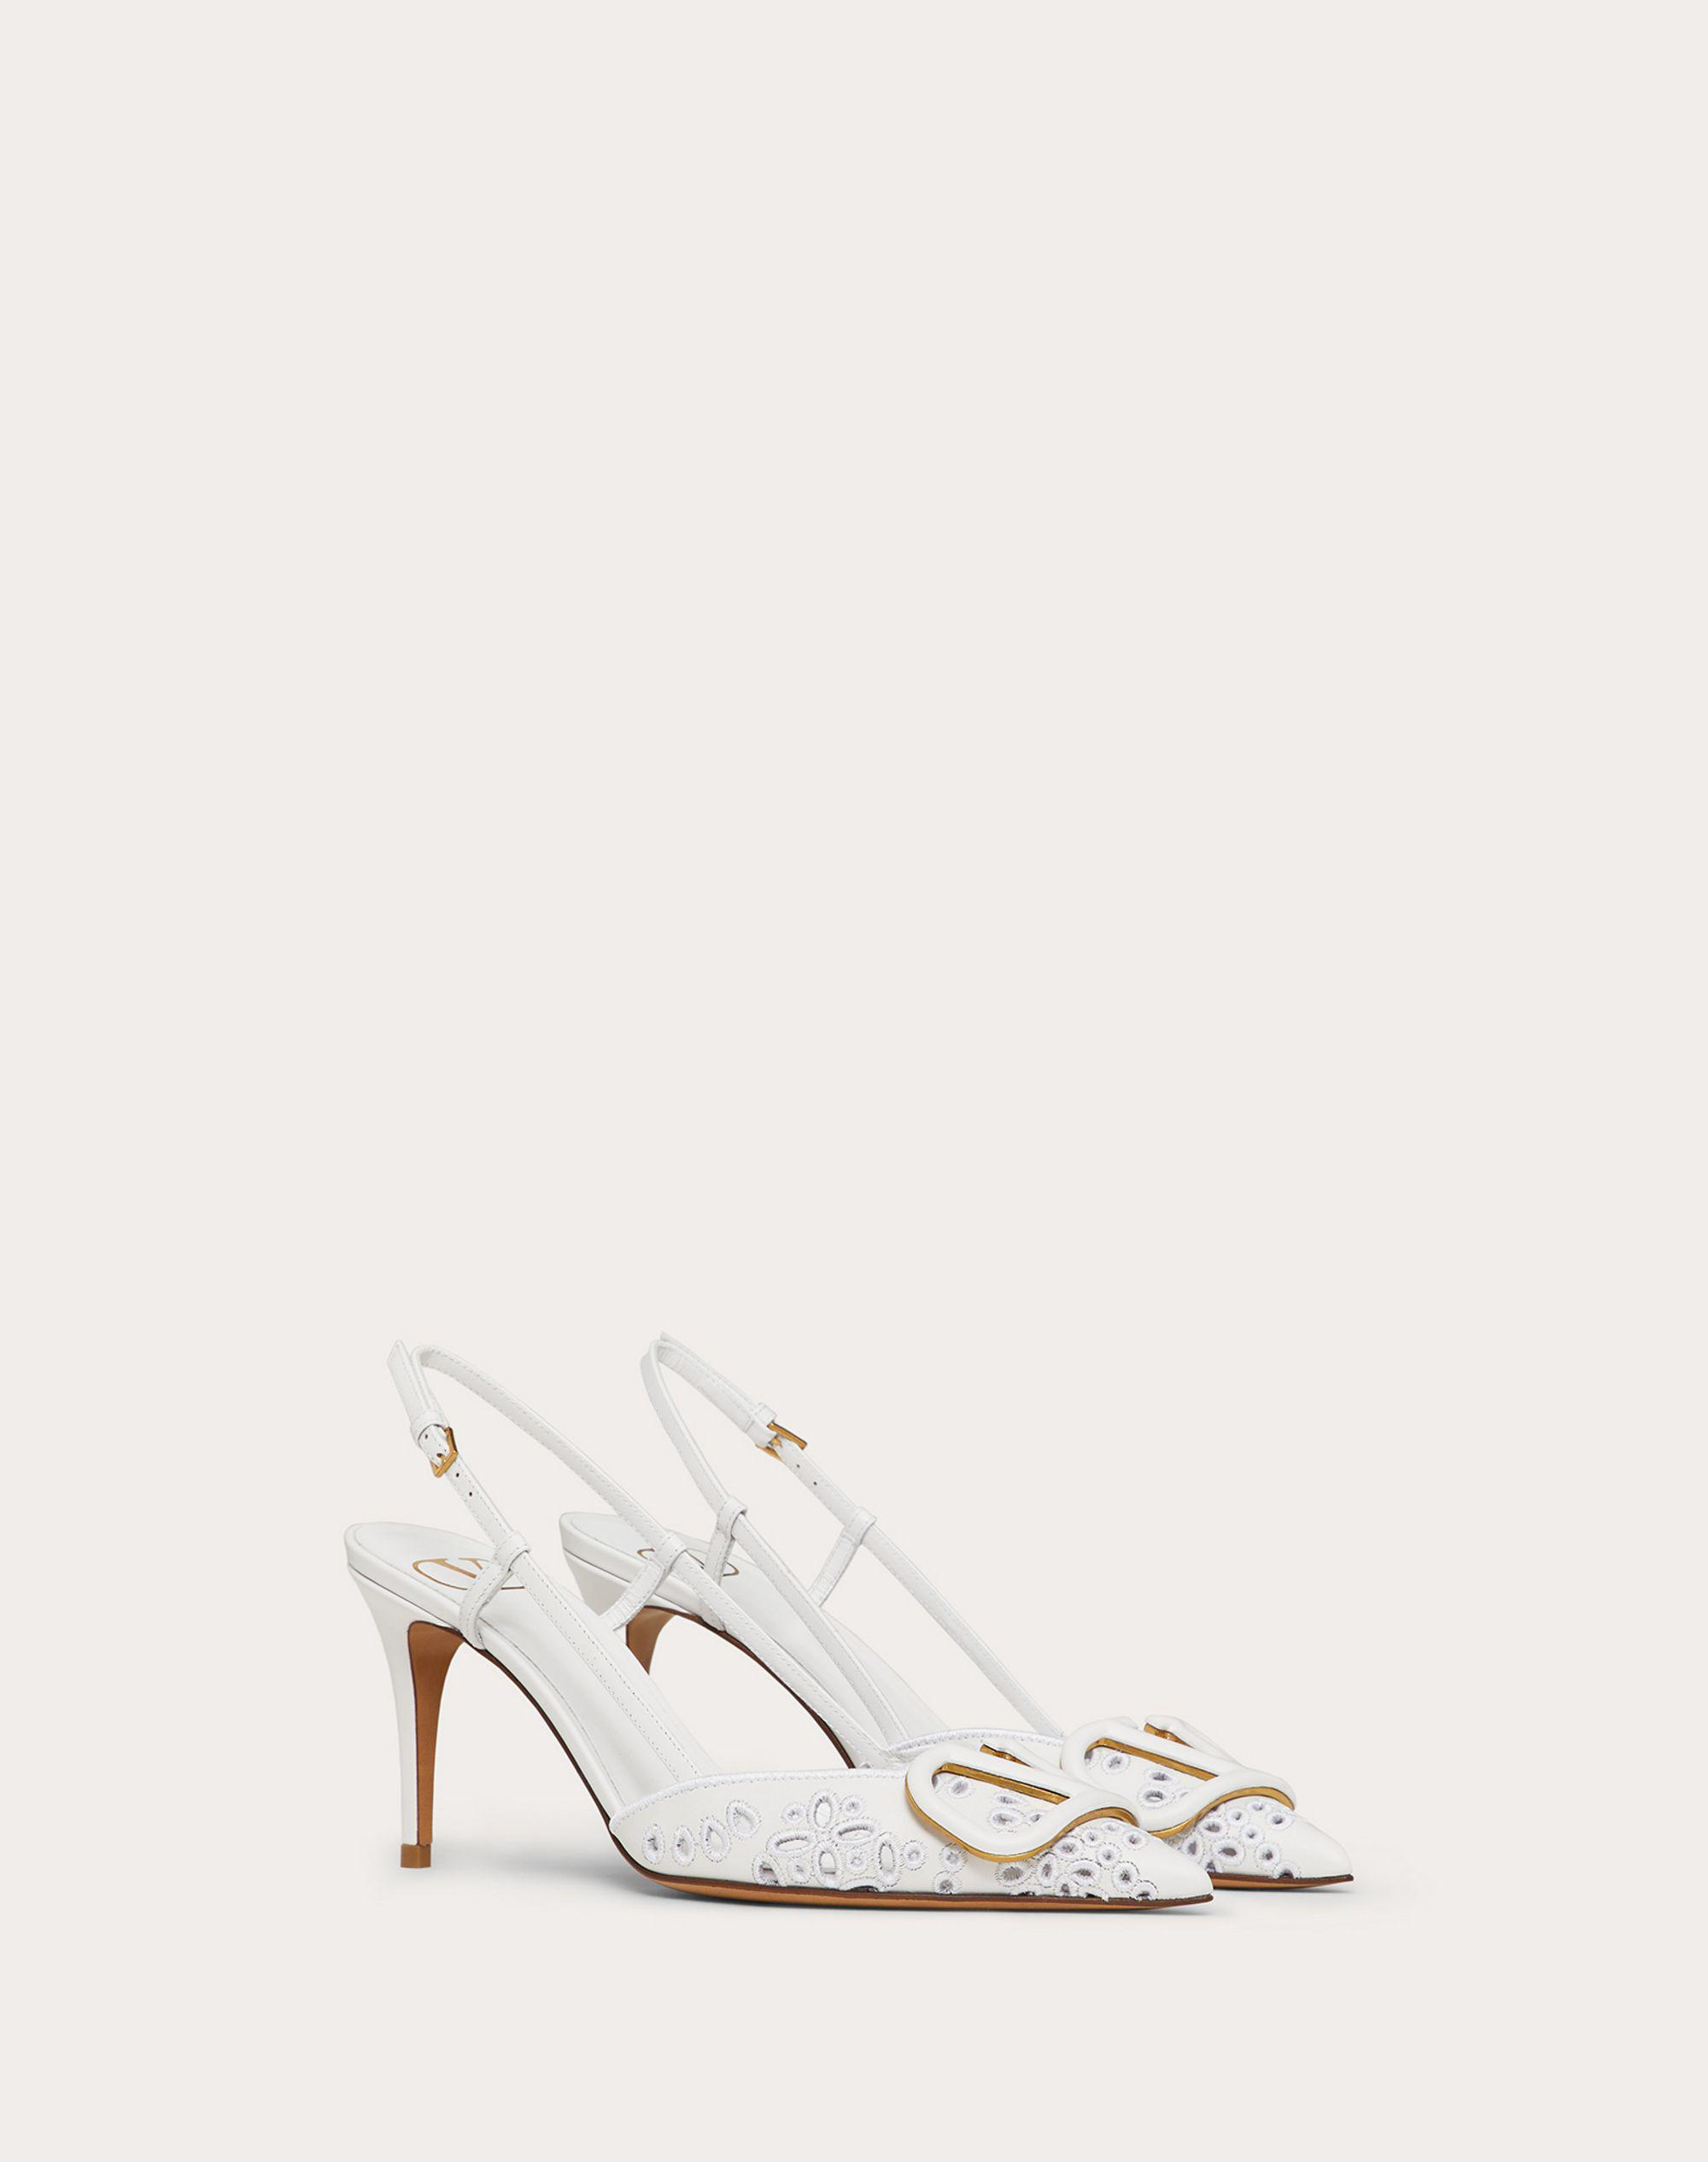 VLOGO SIGNATURE CALFSKIN SLINGBACK PUMP WITH SAN GALLO EMBROIDERY 80 MM 1